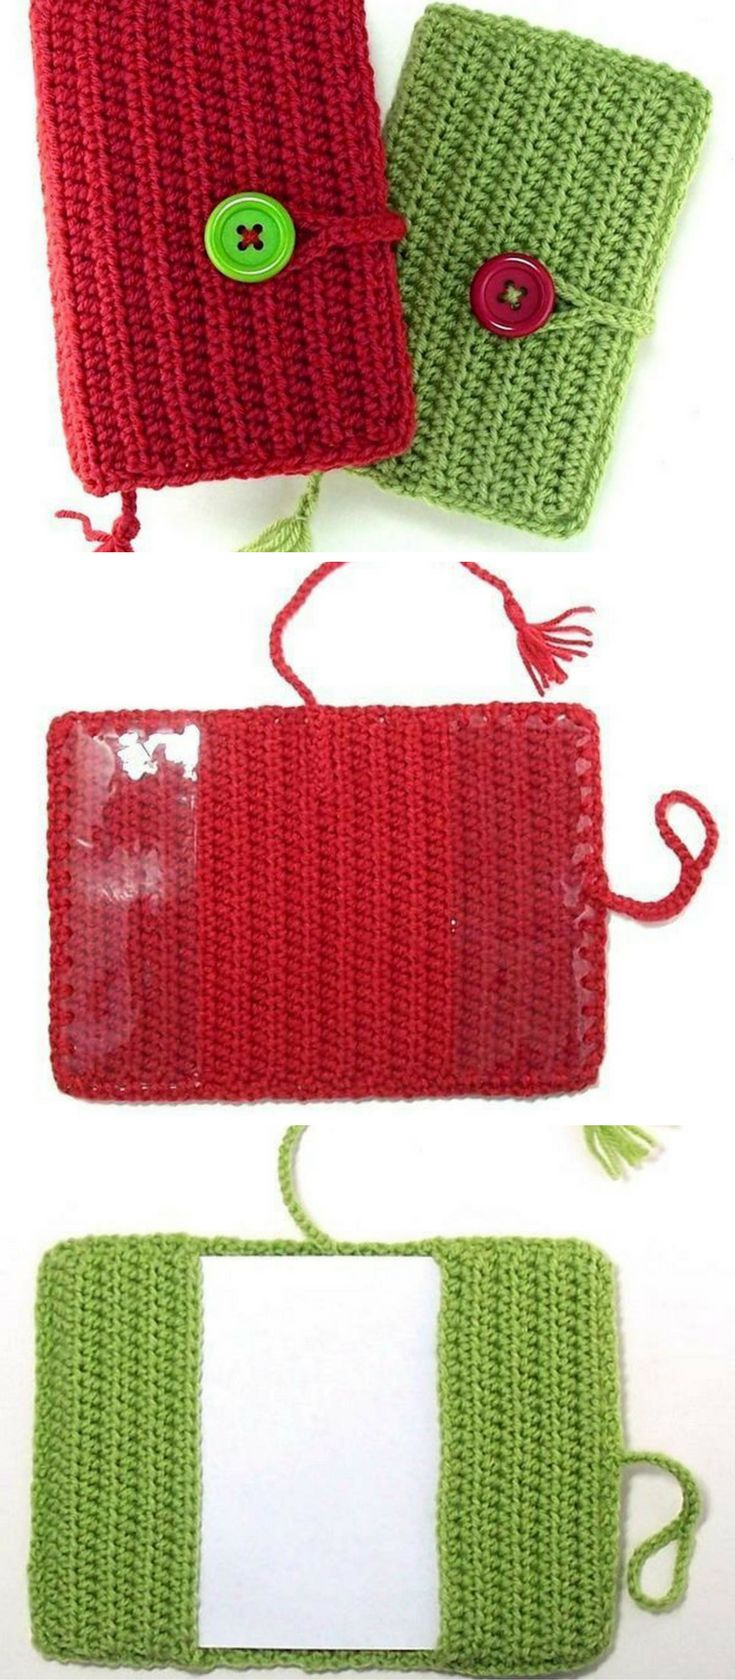 Try a New Crochet Stitch With 8 Quick Book Cover Patterns